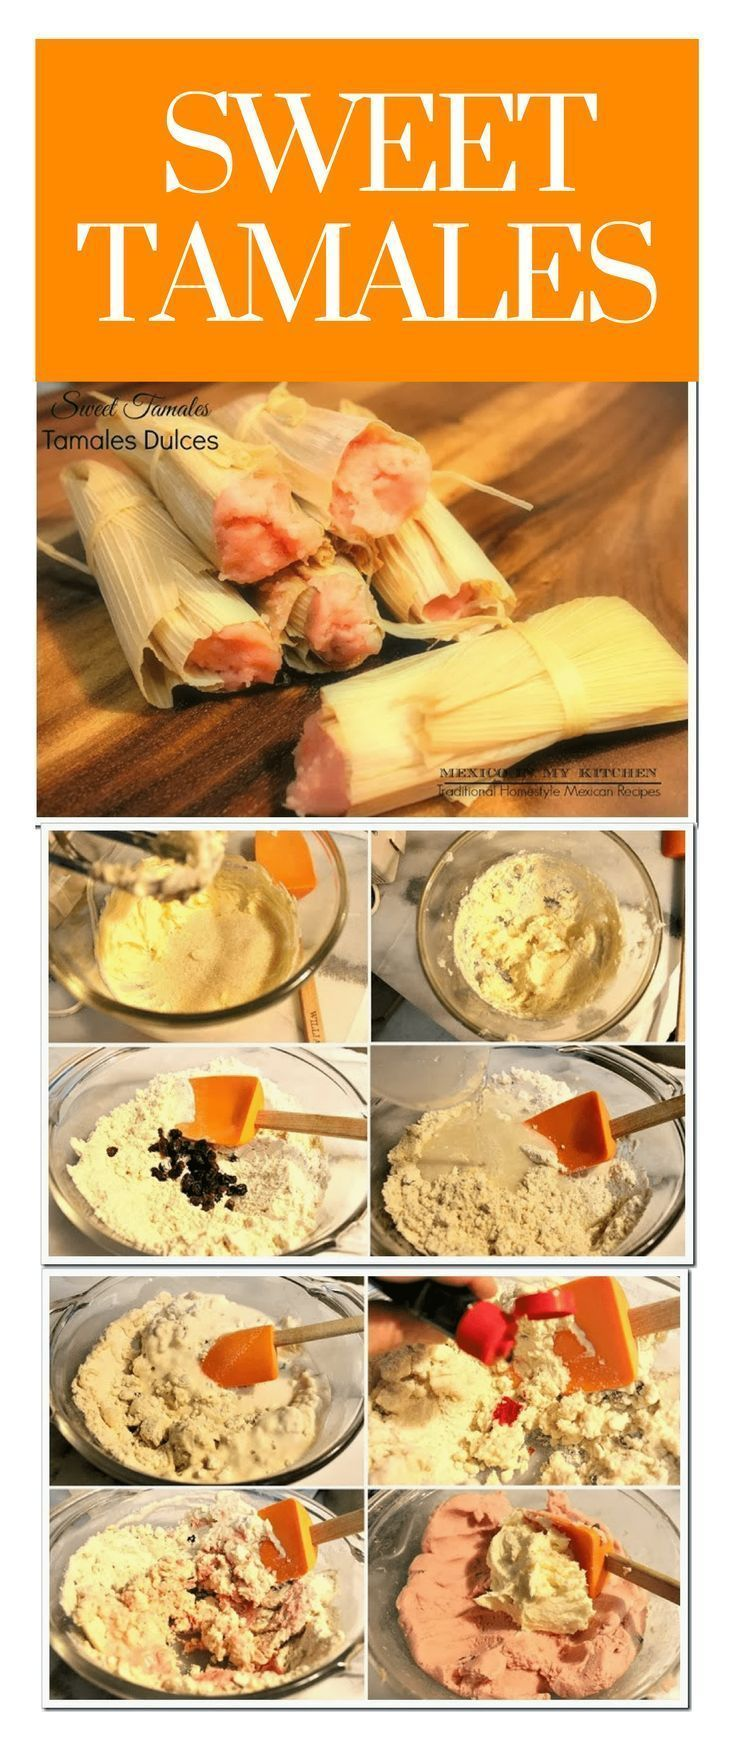 Mexican Sweet Tamales │ (pink sweet tamales) are a meal for celebration, a special treat for parties and birthdays, or ritual times like the Day of the Dead. #mexicanrecipes #mexicanfood #mexicoinmykitchen  #tamal #mexicancuisine